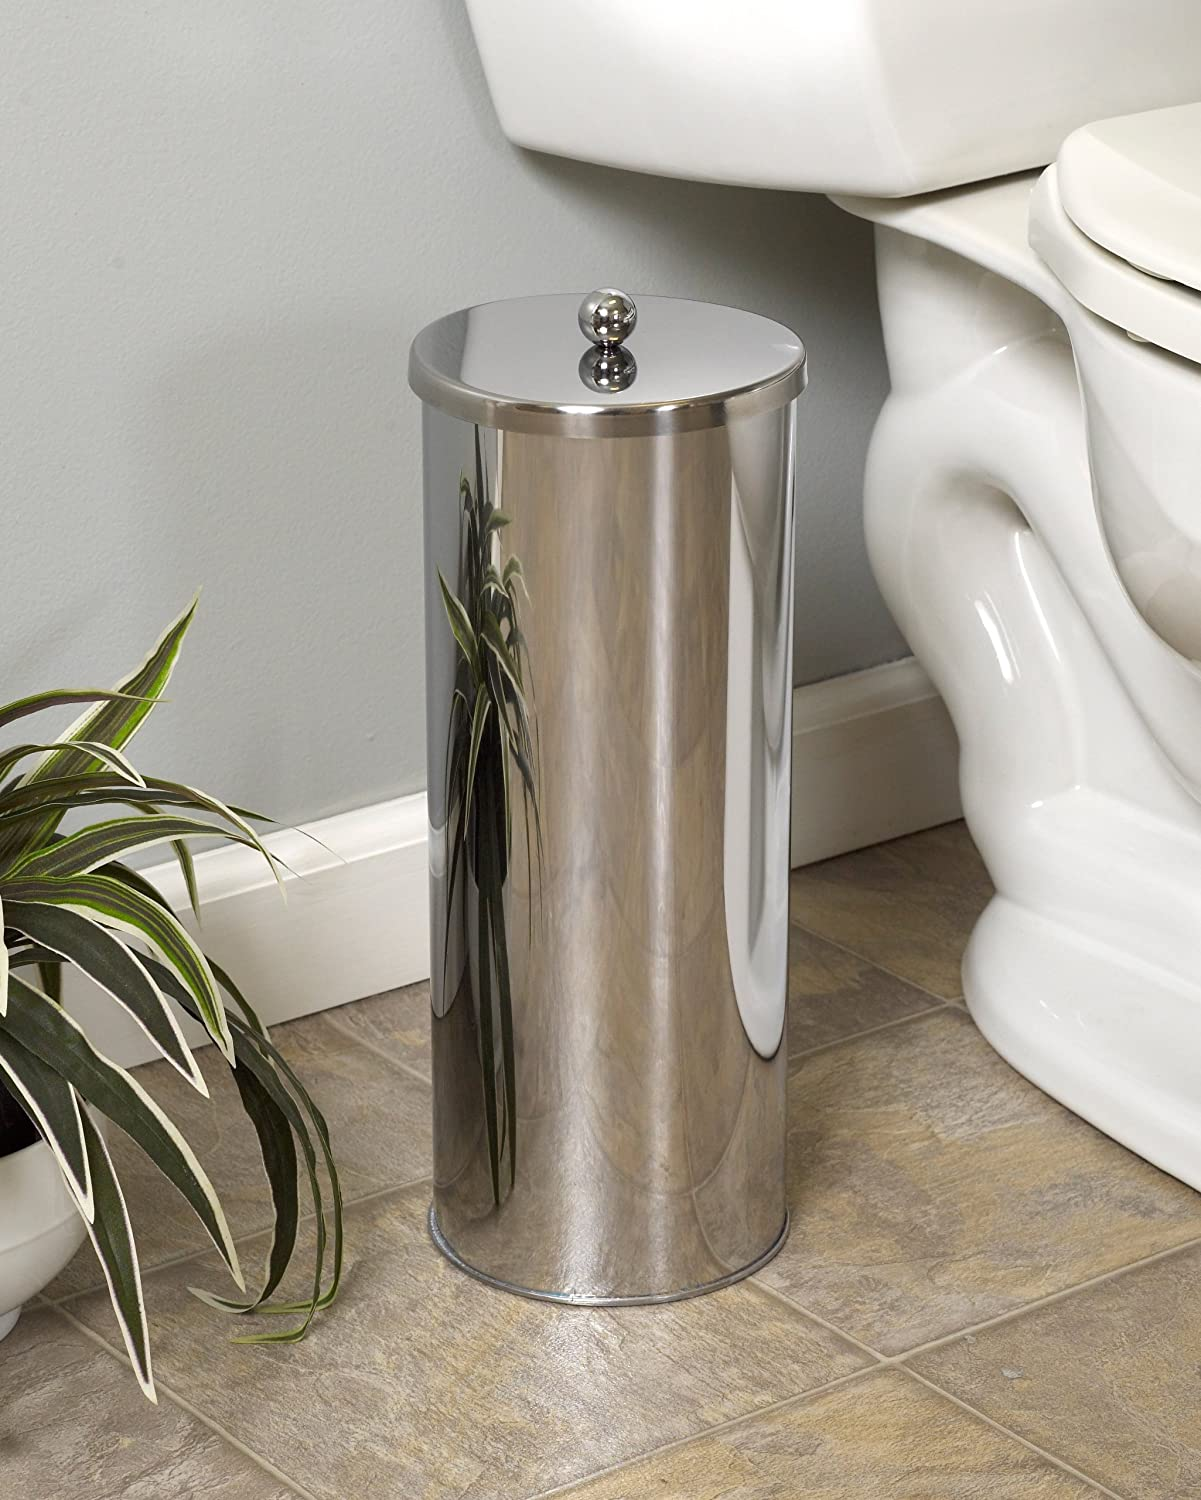 Enclosed Toilet Paper Holder Zenna Home 7666st Toilet Paper Canister Chrome New